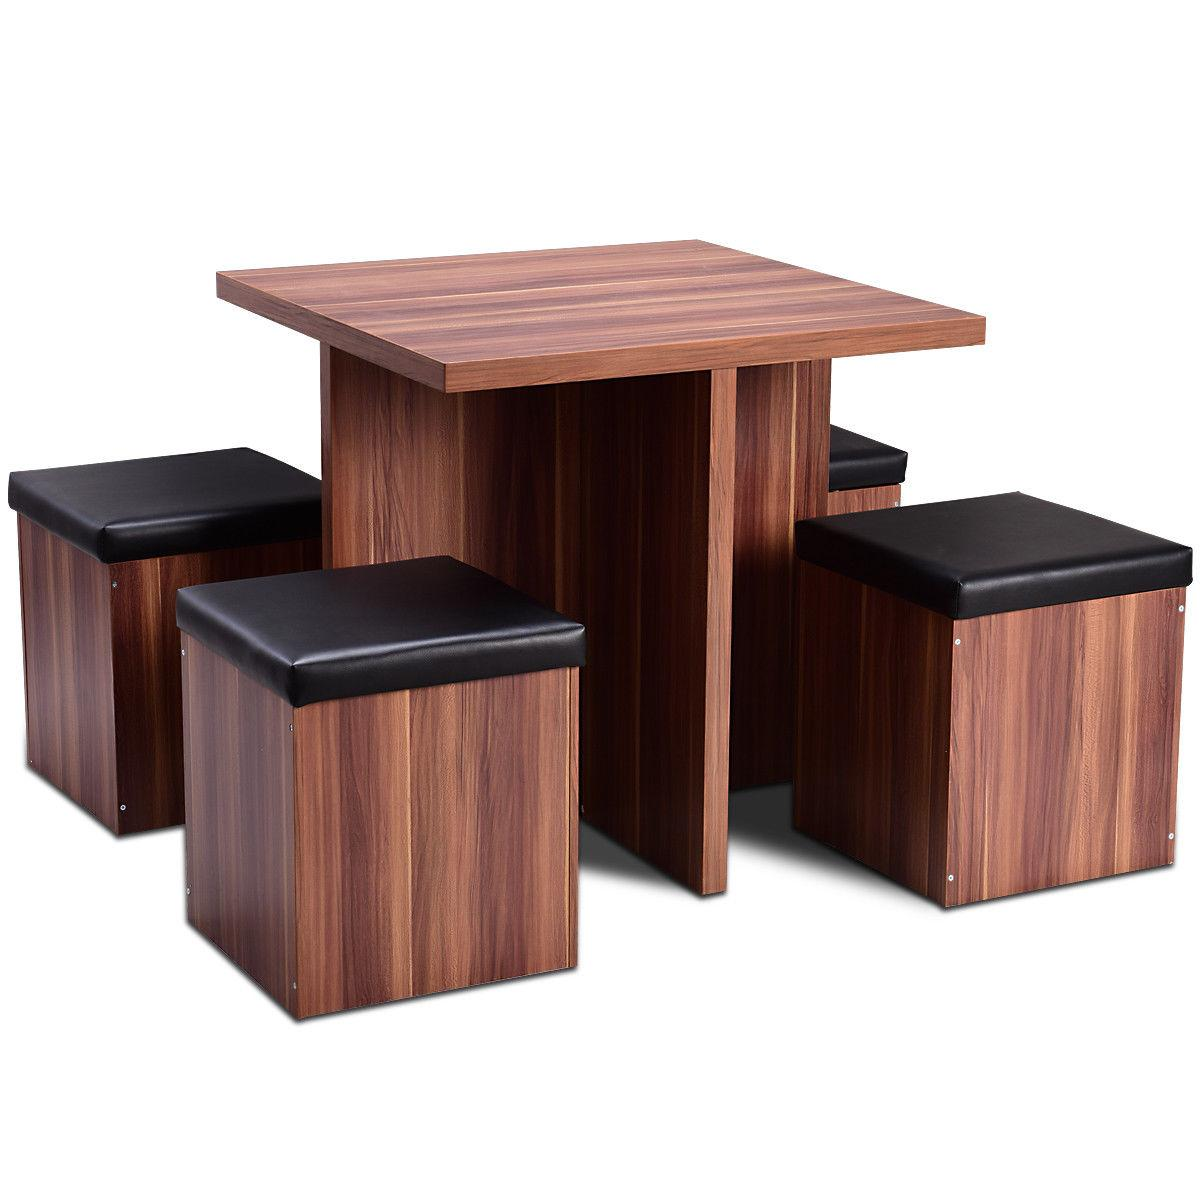 5 Wood Dining Table Kitchen Dinette Table Stool